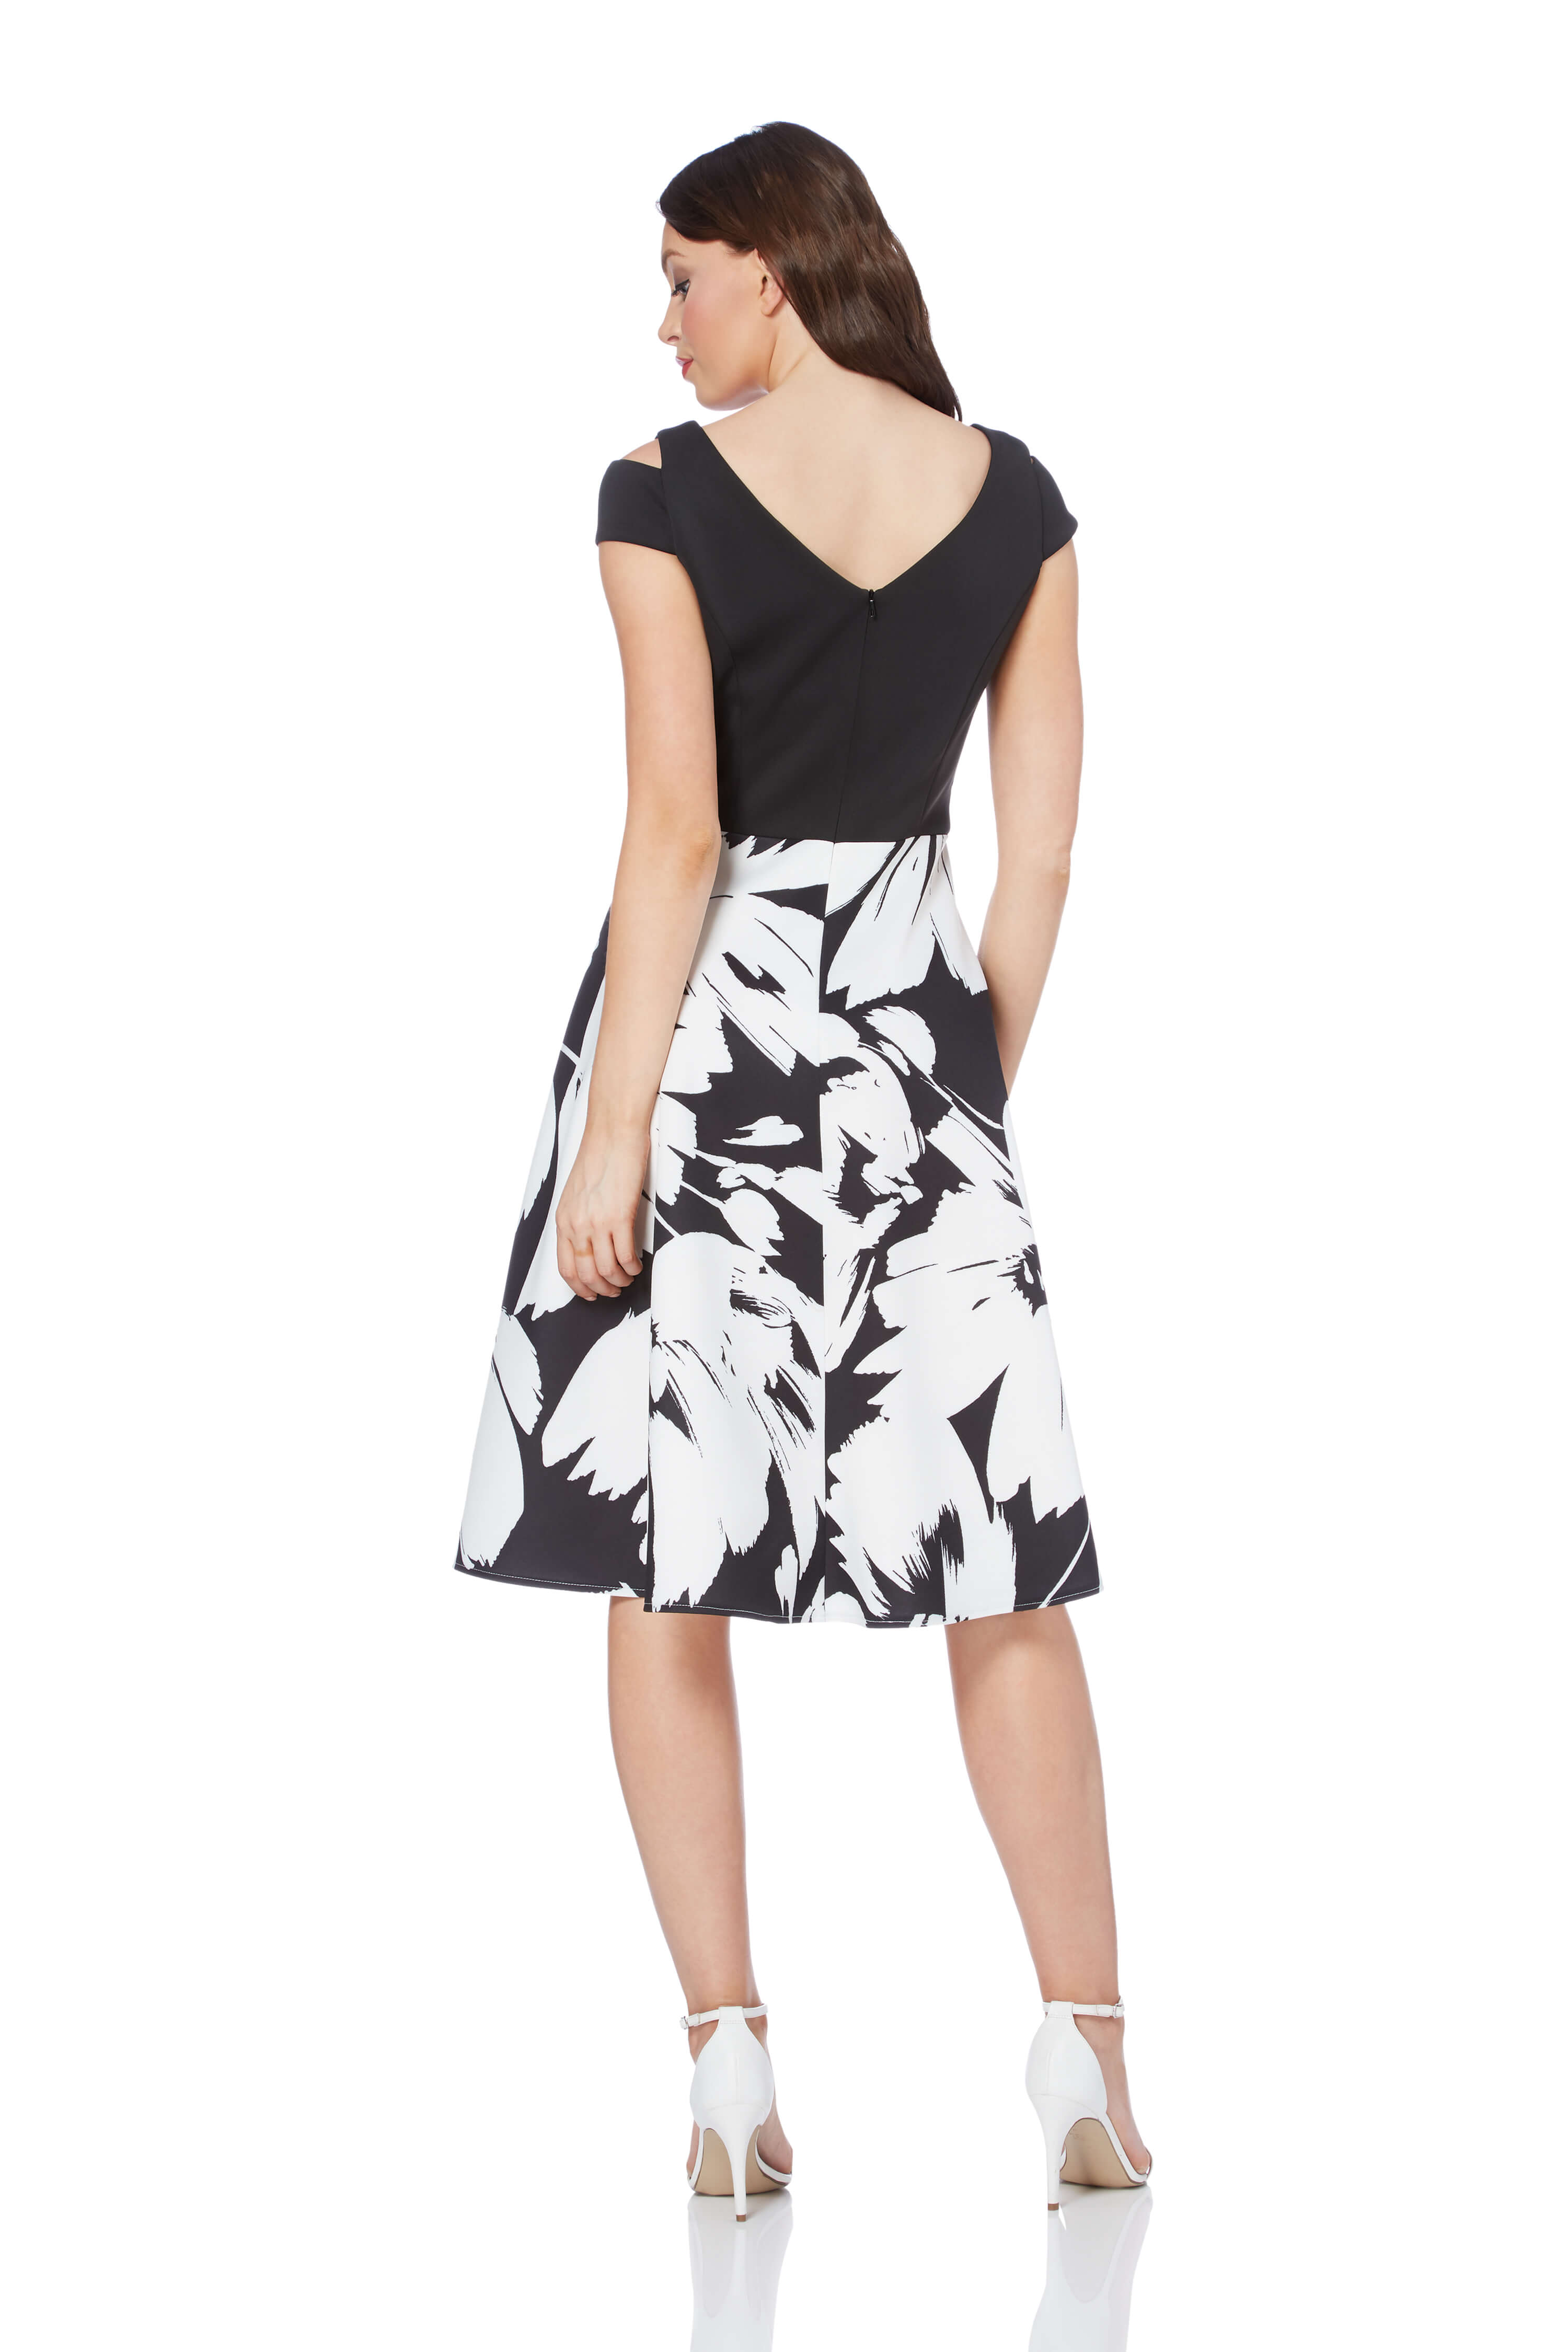 Roman-Originals-Women-039-s-Fit-and-Flare-Floral-Scuba-Dress-Sizes-10-20 thumbnail 7